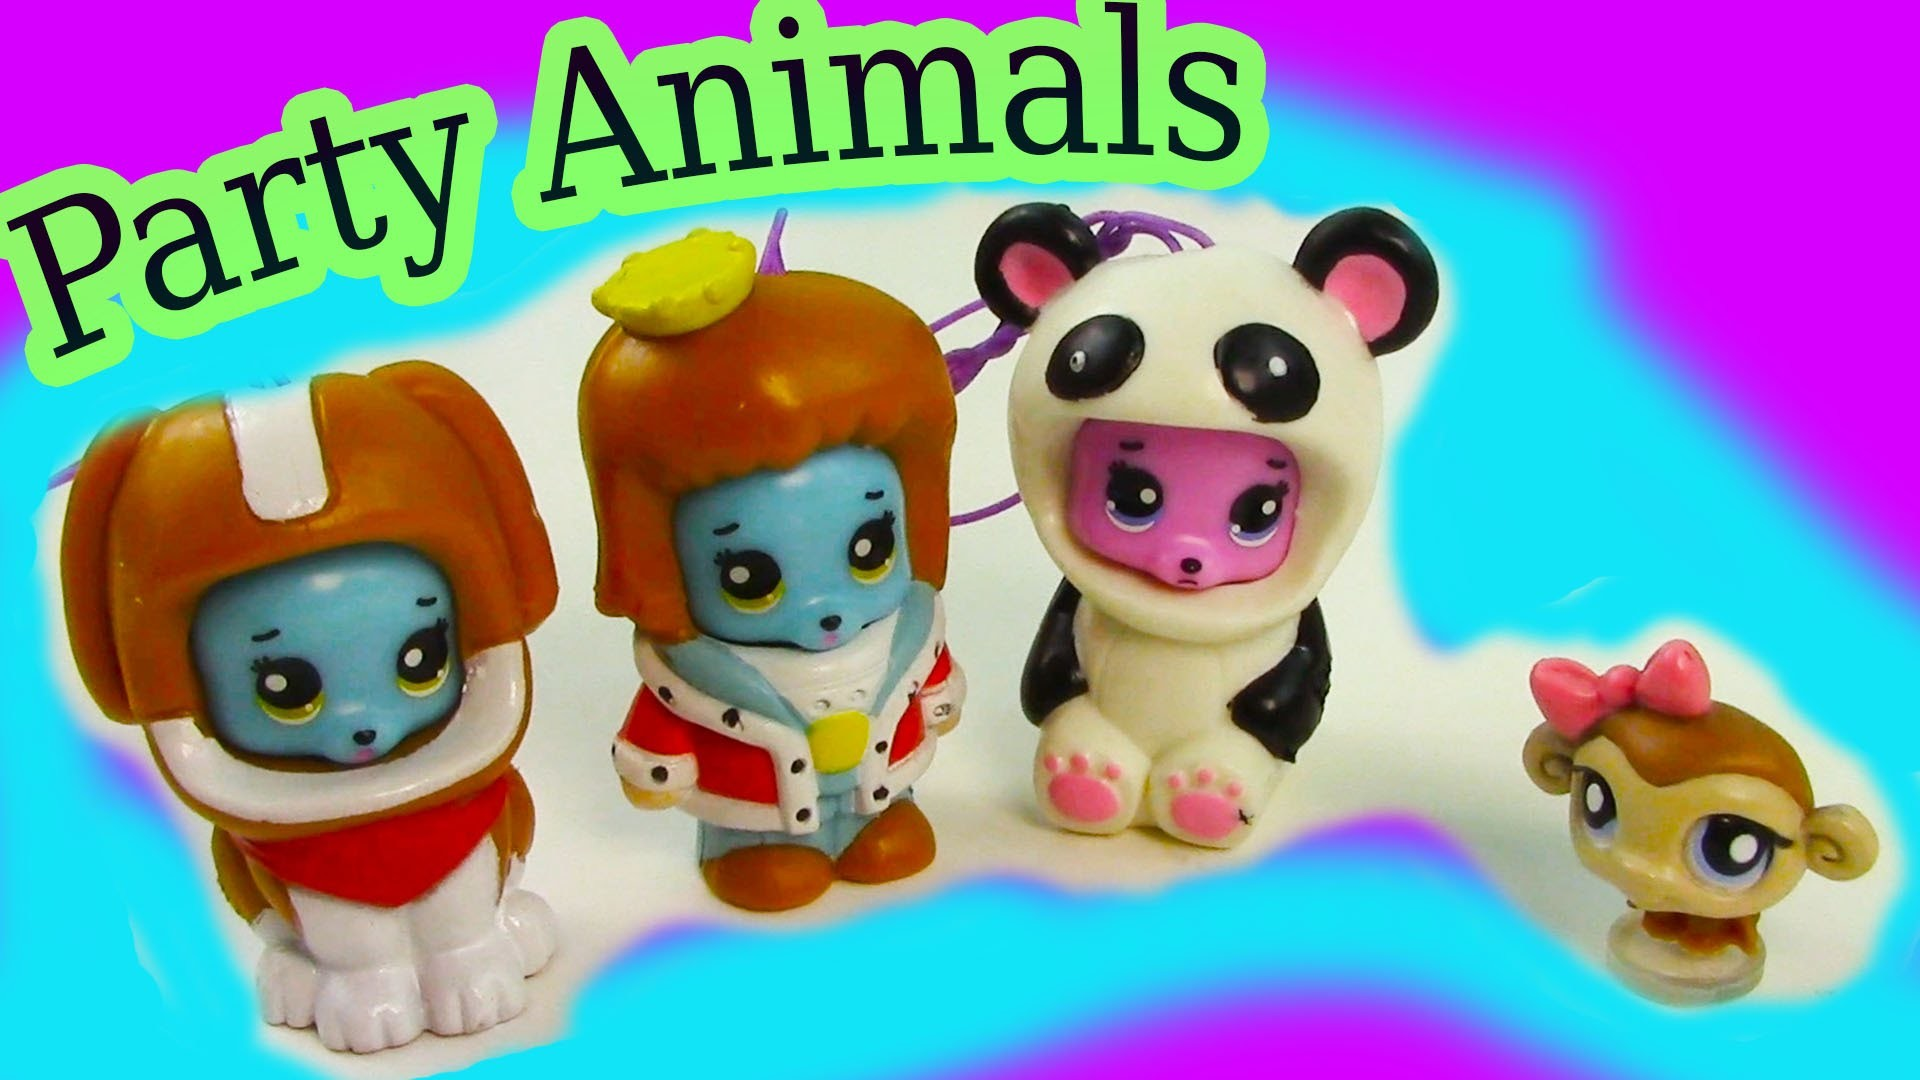 Party Animals Fun Bears Costumes Unboxing Toy Review Littlest Pet Shop Opening